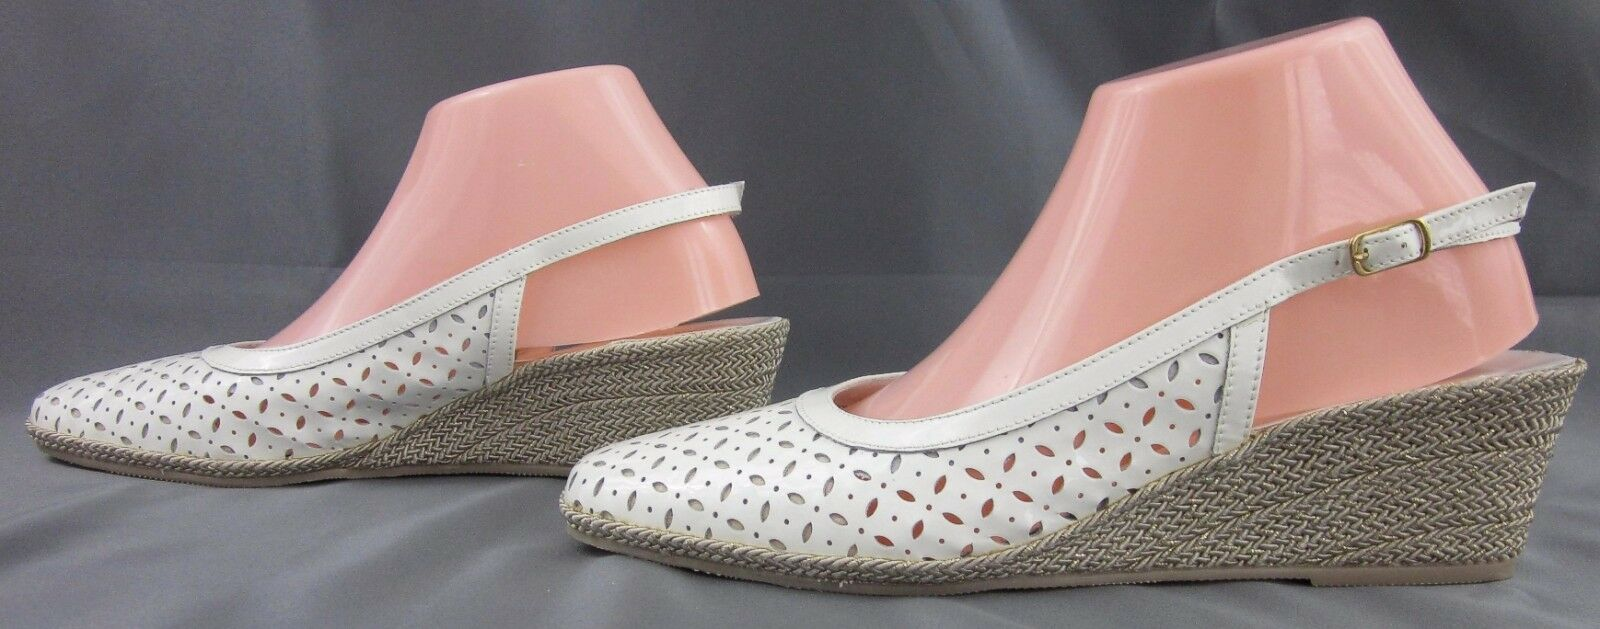 NEU  Sesto Meucci Laser Cut Closed Toe Slingback Wedge WEISS Patent Sz 9.5W